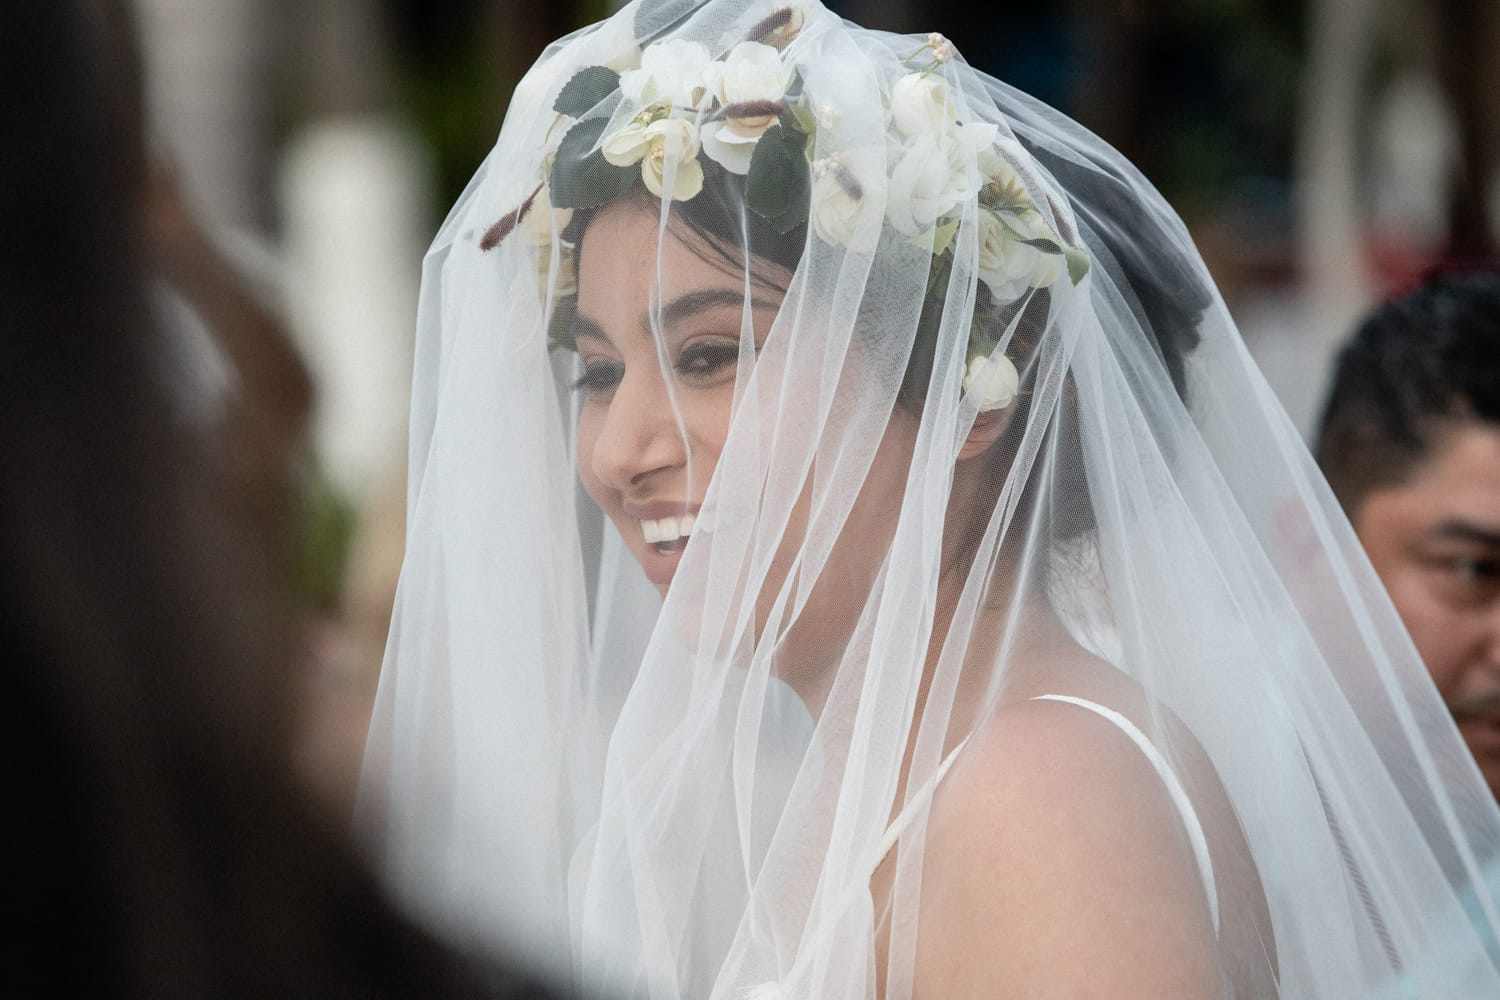 Bride wearing white veil and bridal crown with white flowers.